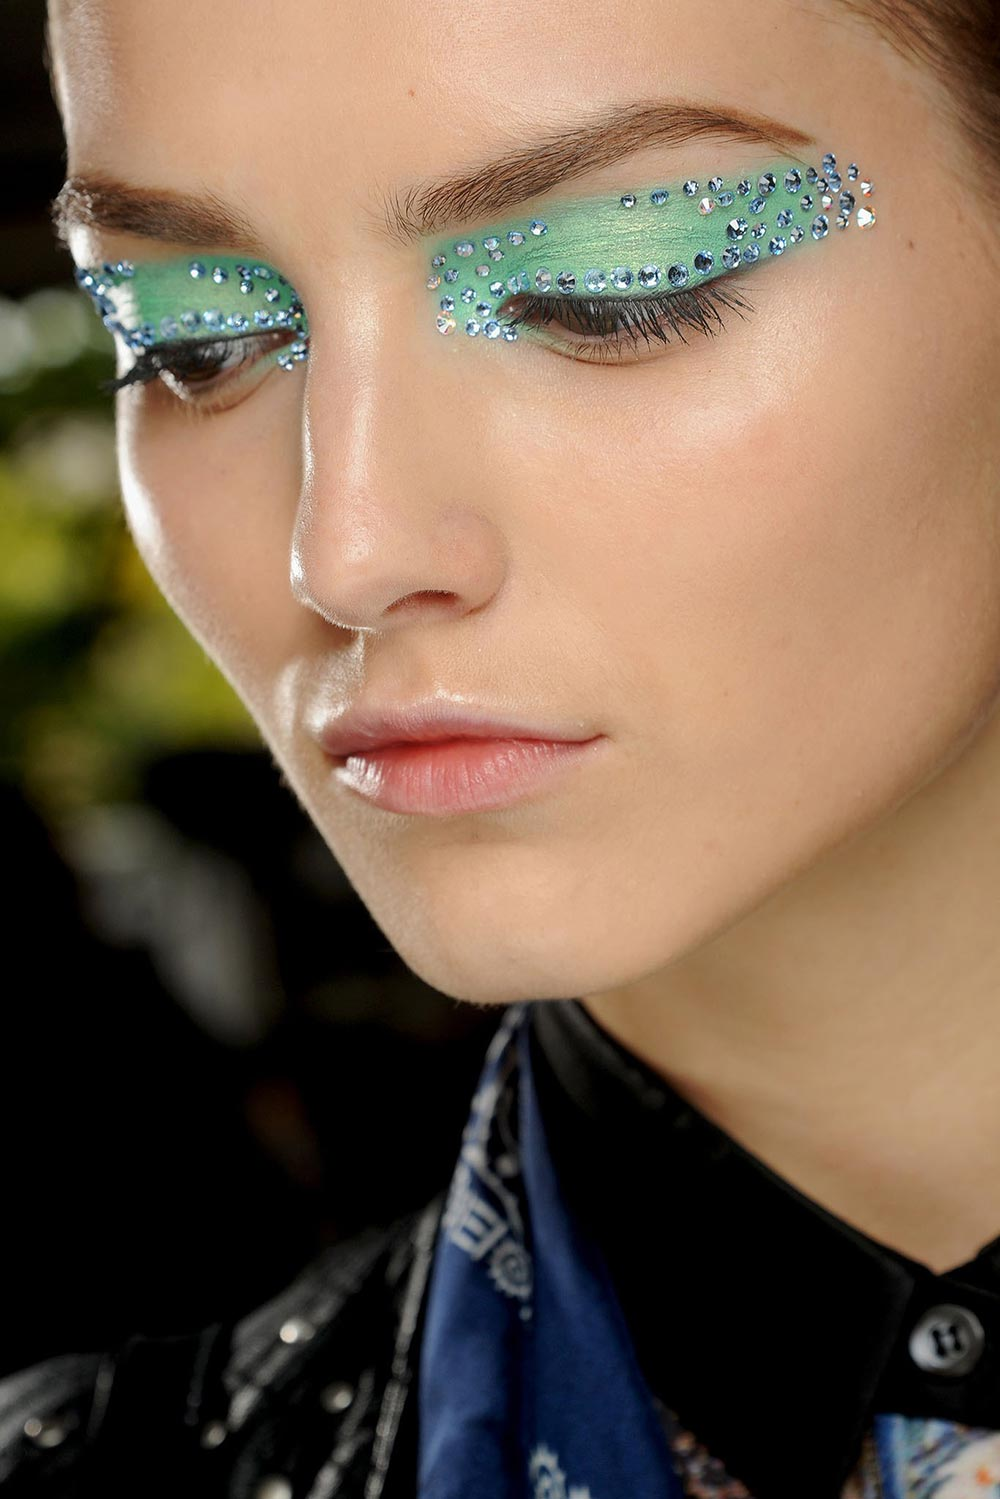 Backstage makeup at Christian Dior Spring/Summer 2013